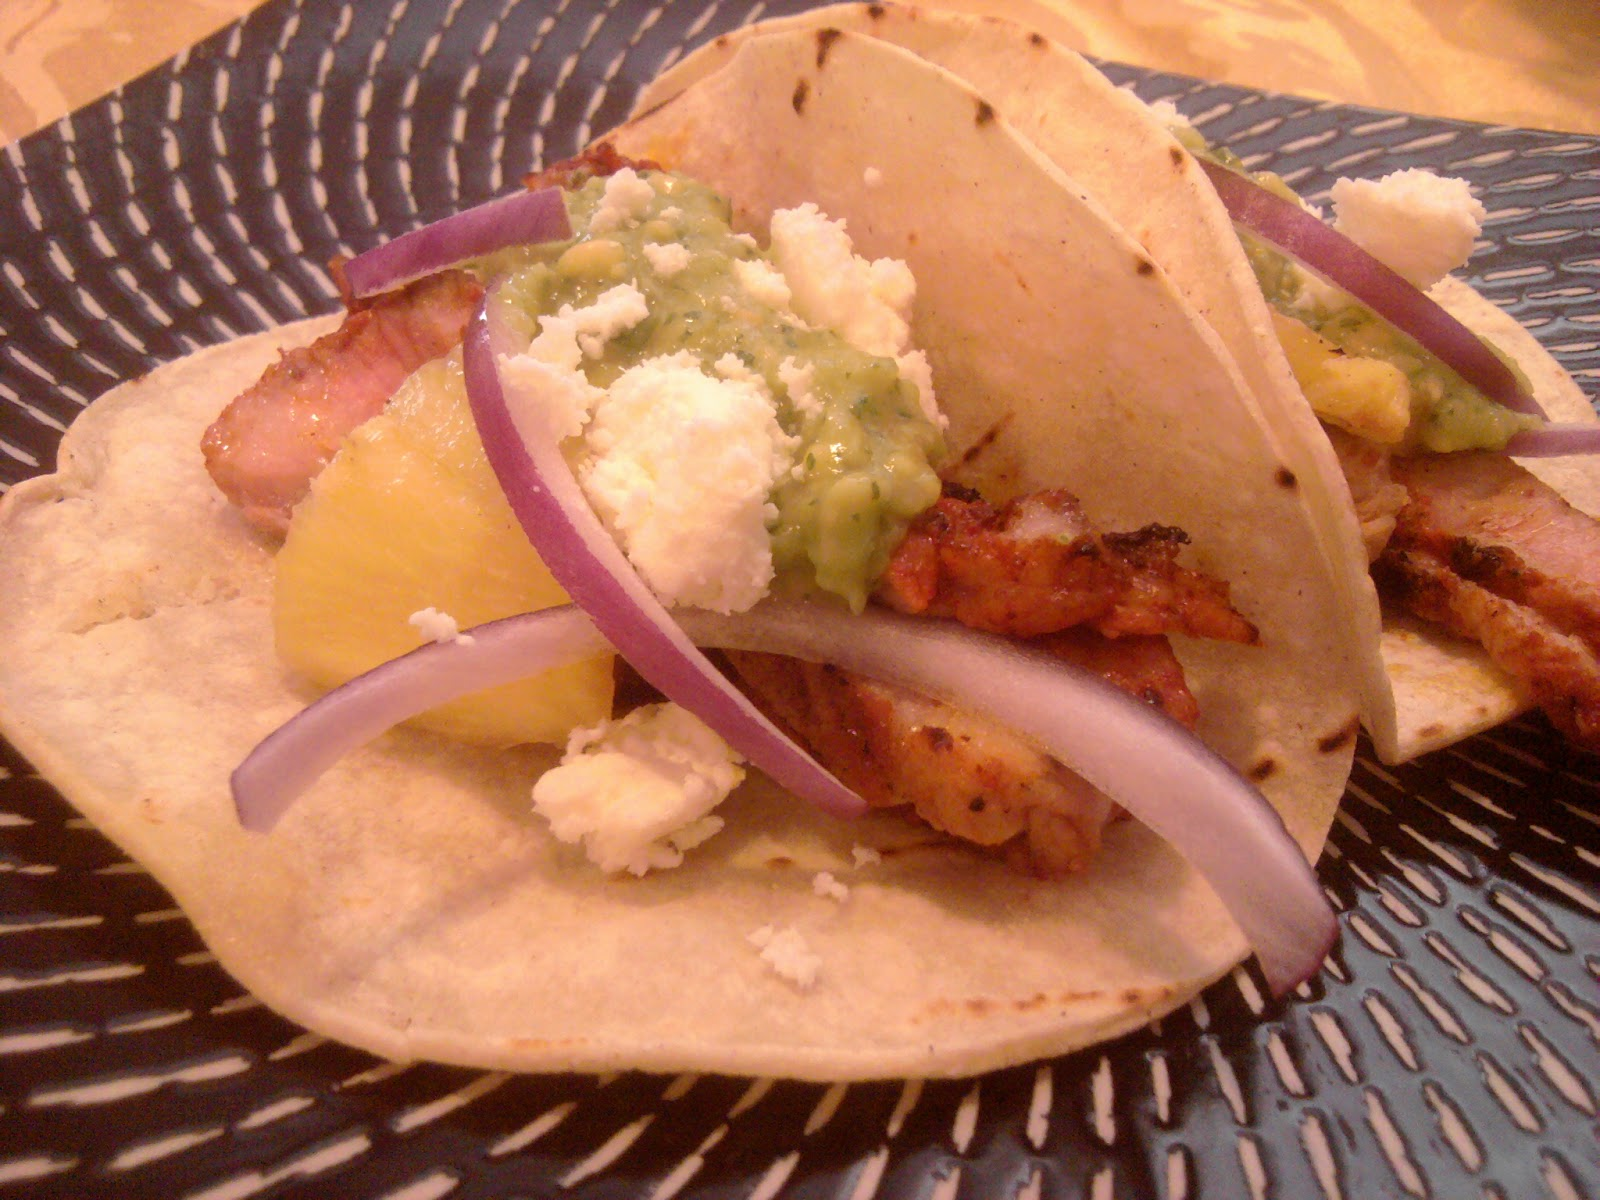 Dishin' It Out: Pork Steak Tacos with Avocado Tomatillo Salsa